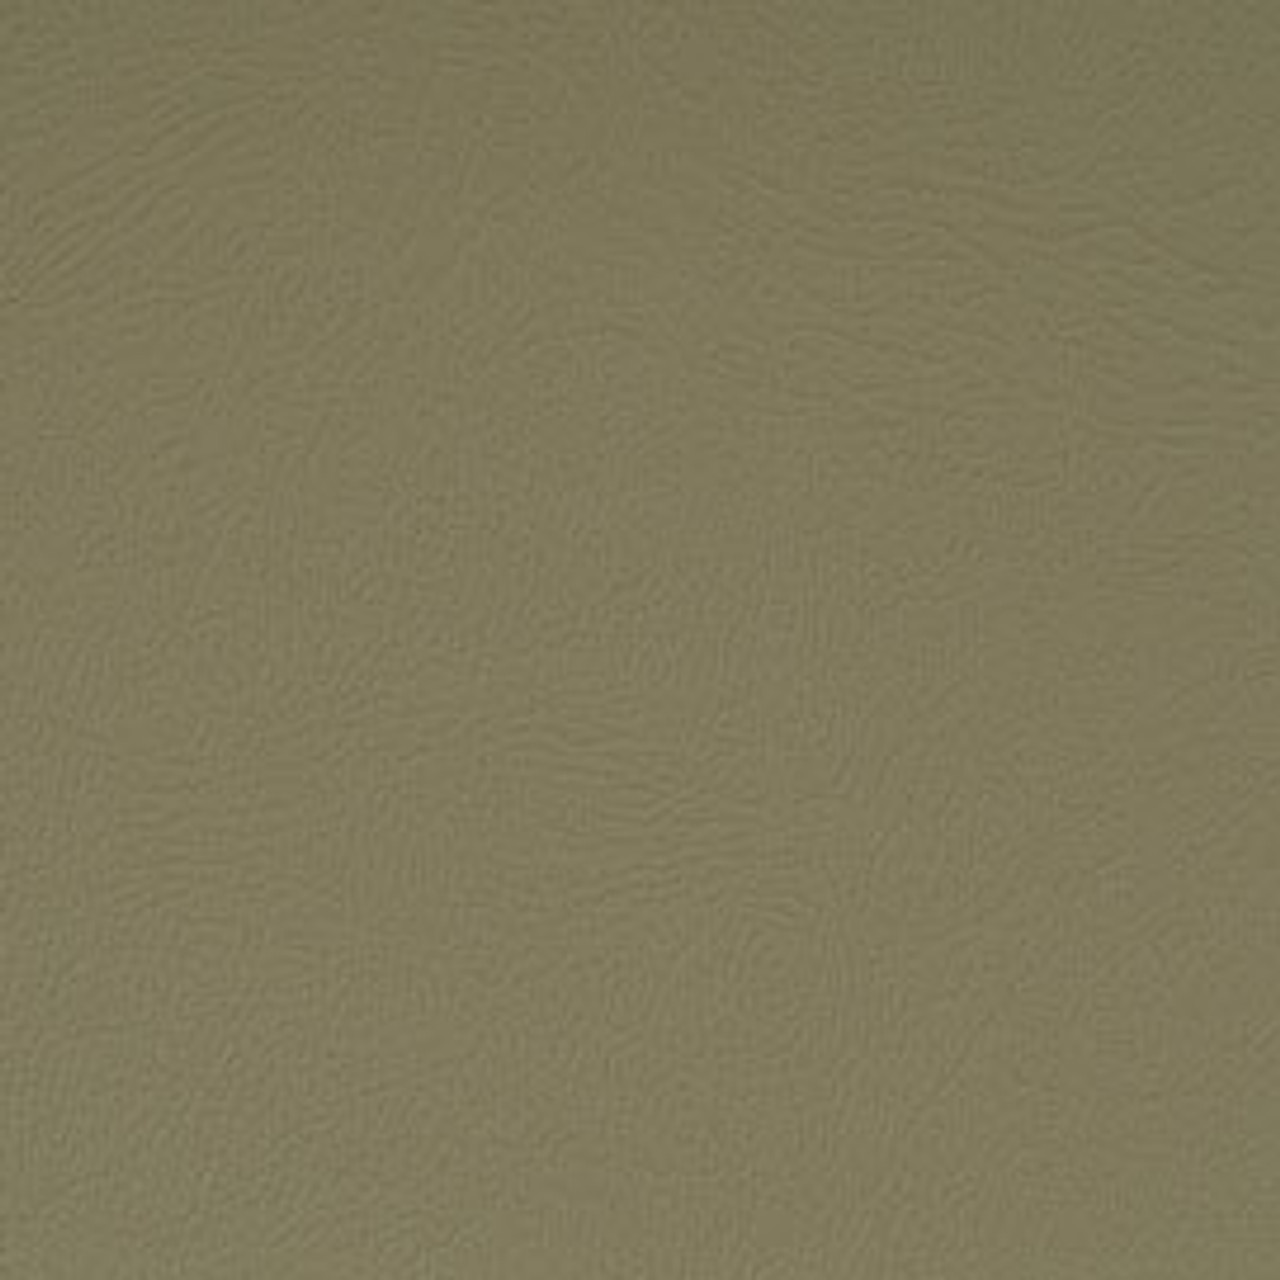 "Monticello 7043 Medium Neutral Vinyl 54"" - Sold by the CONTINUOUS YARD!"